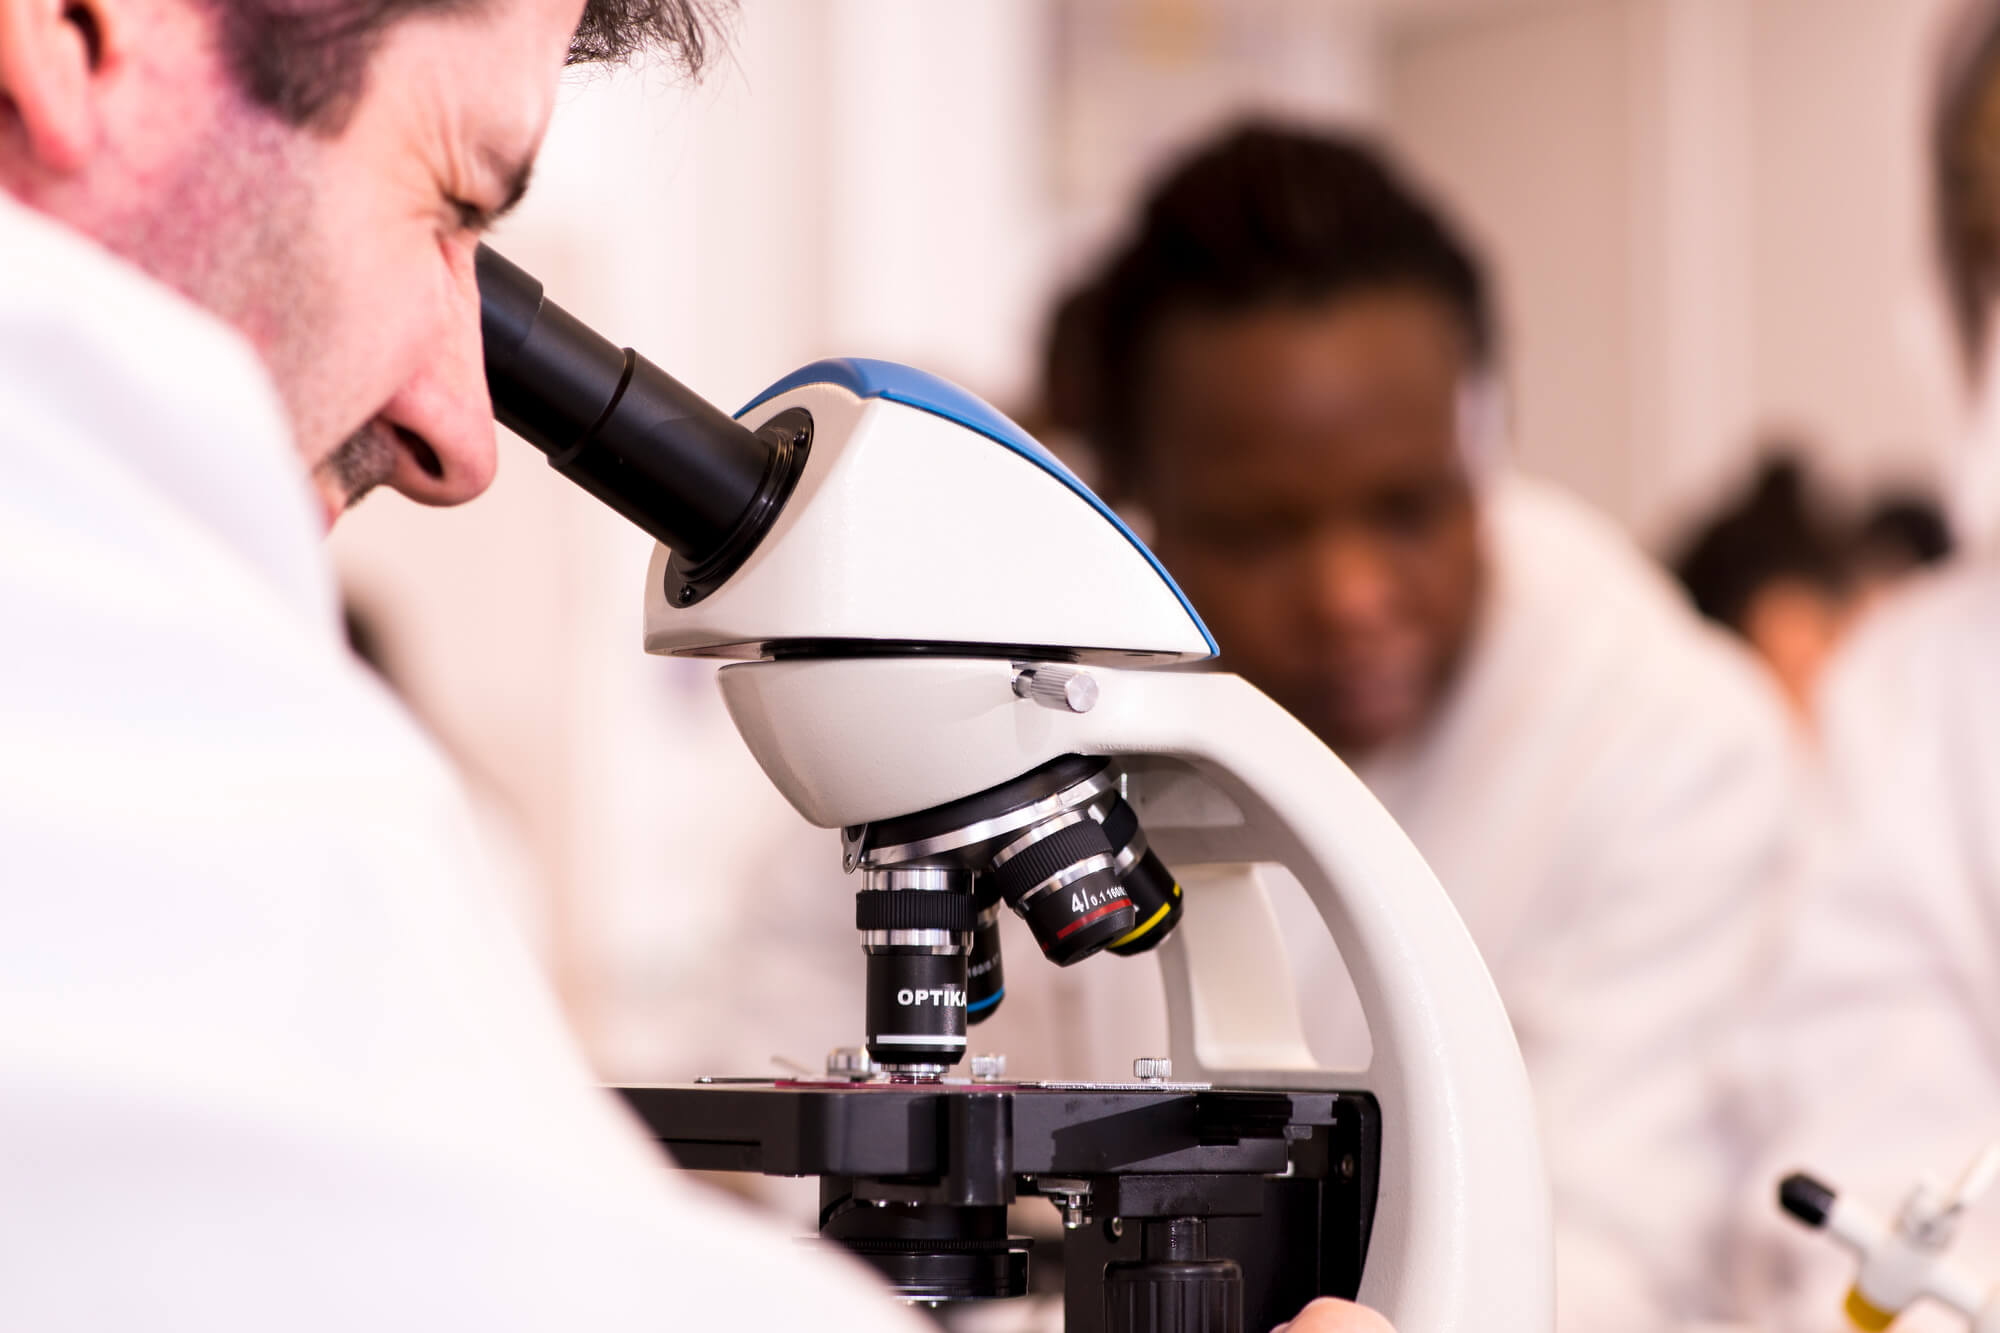 Human Biology student undertaking research using a microscope